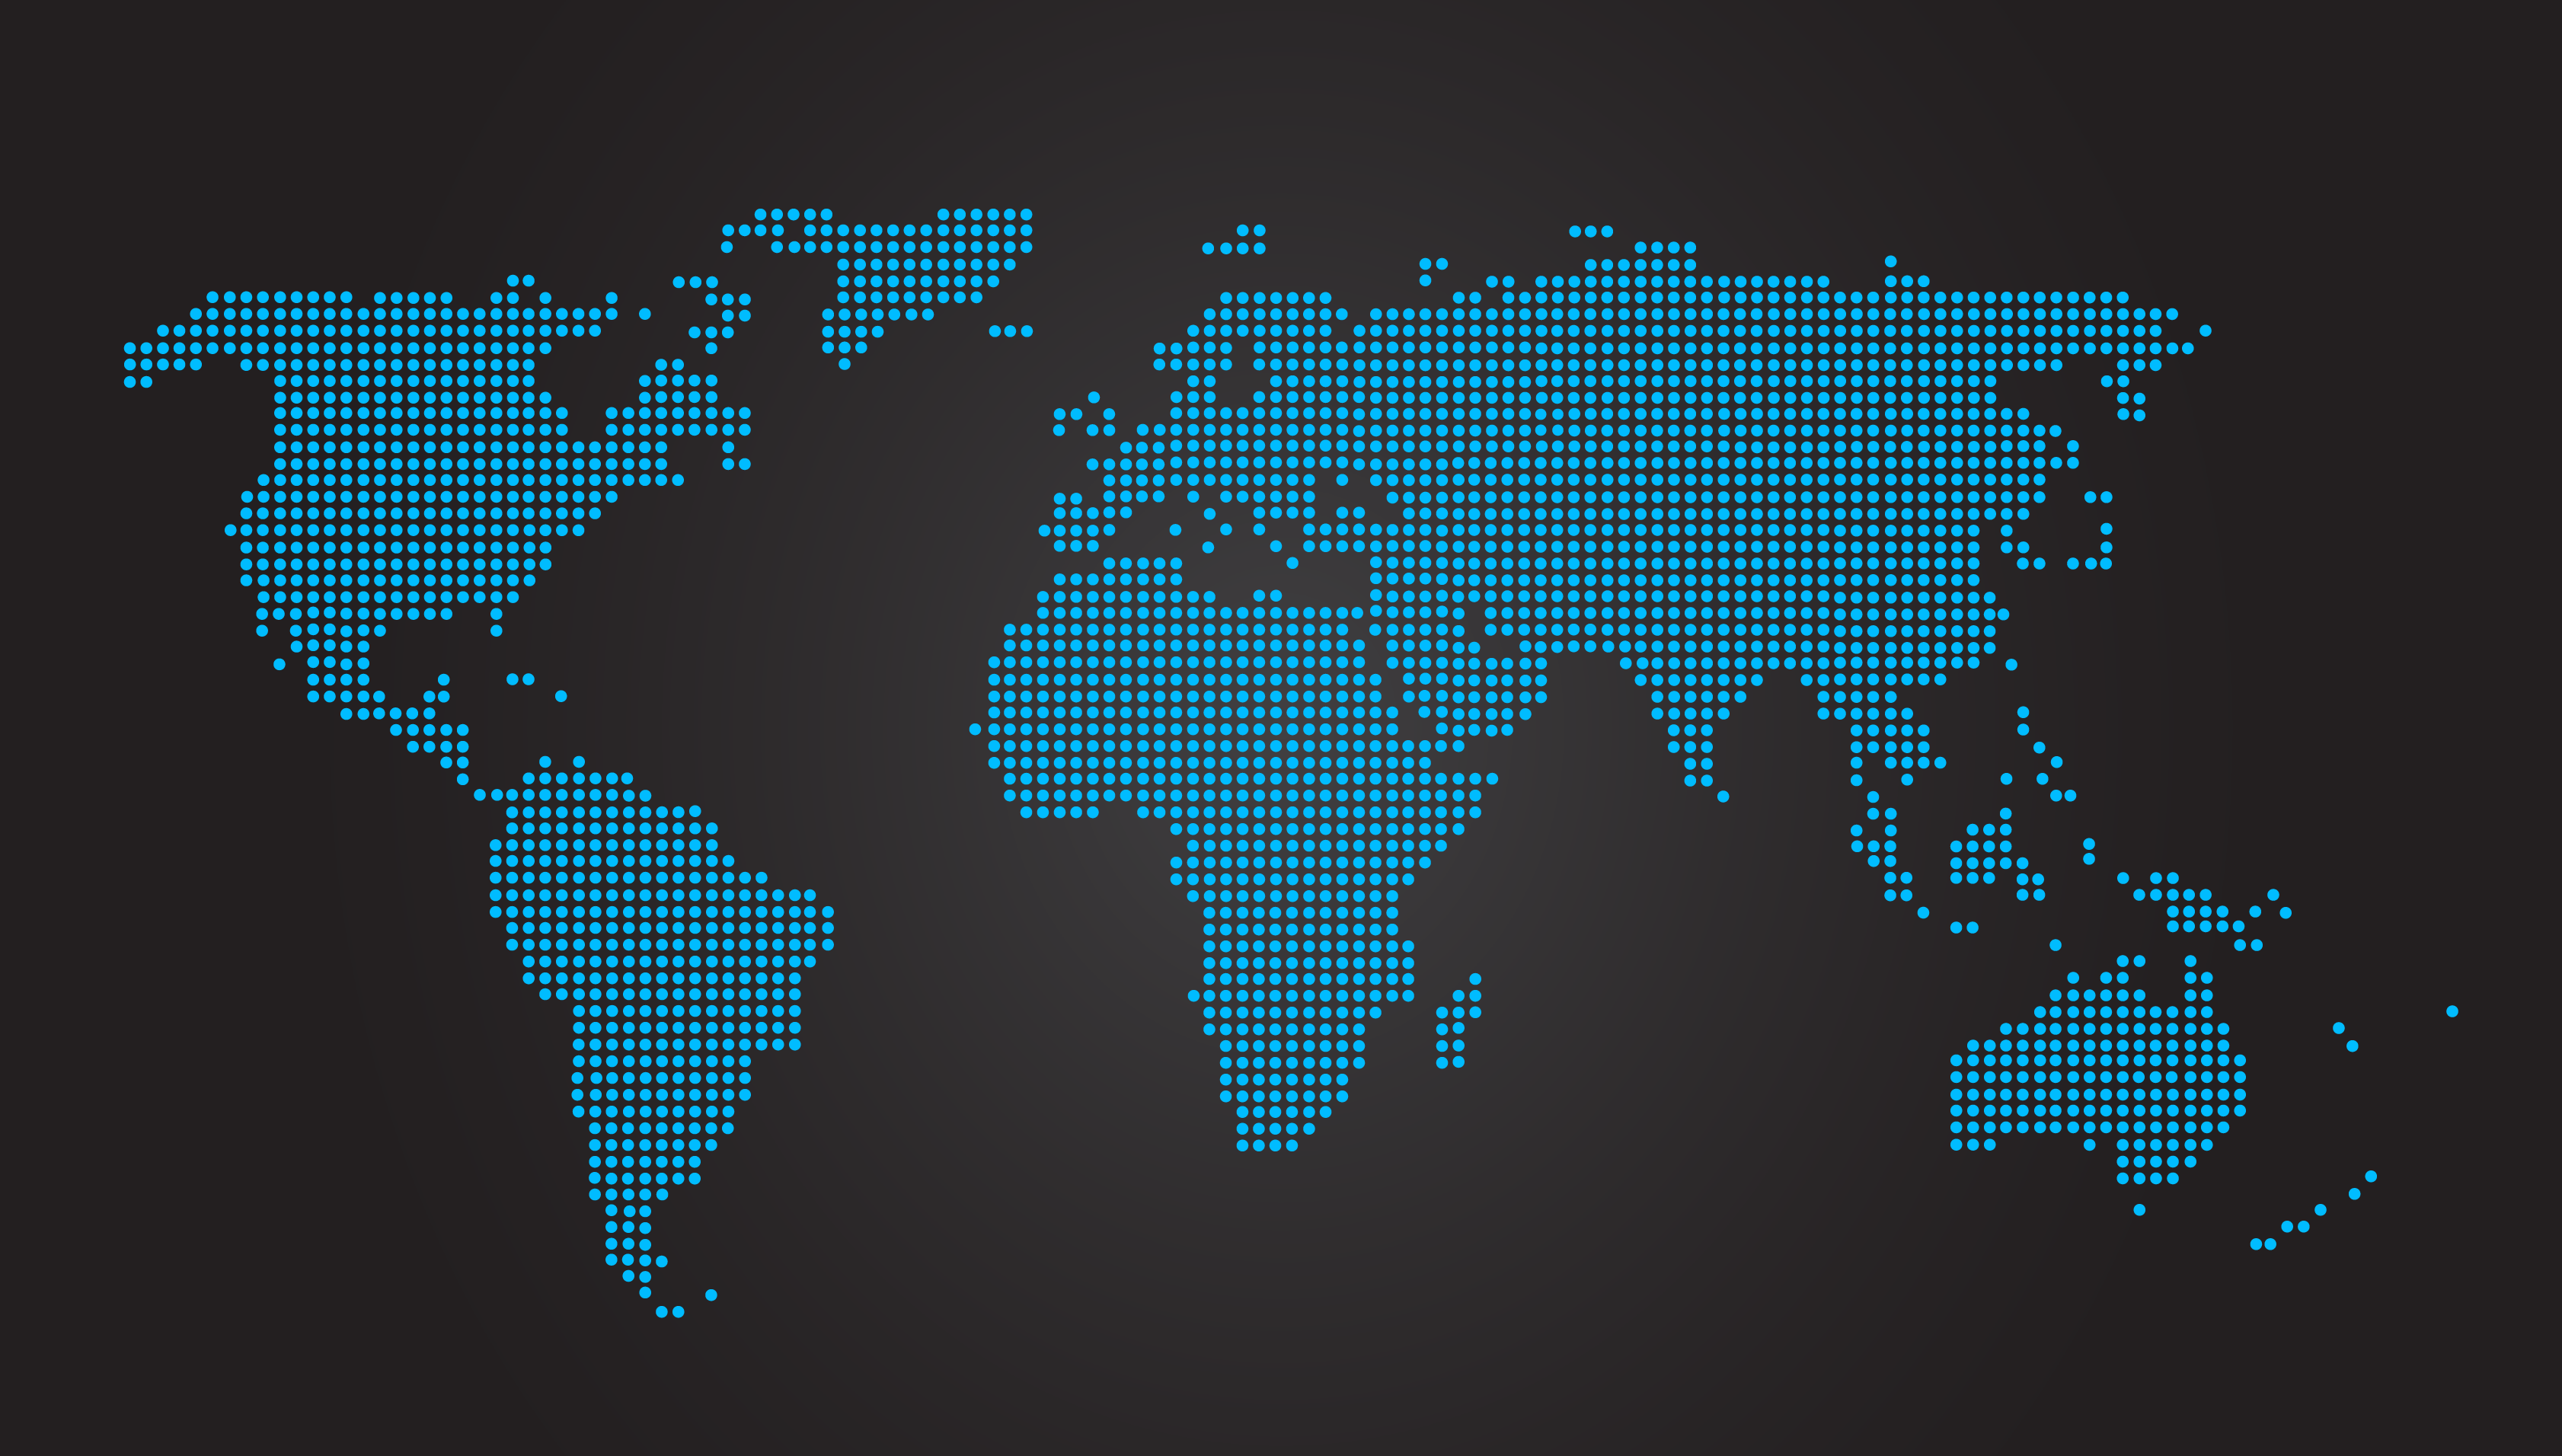 World Map Dotted Black • Mapsof.net